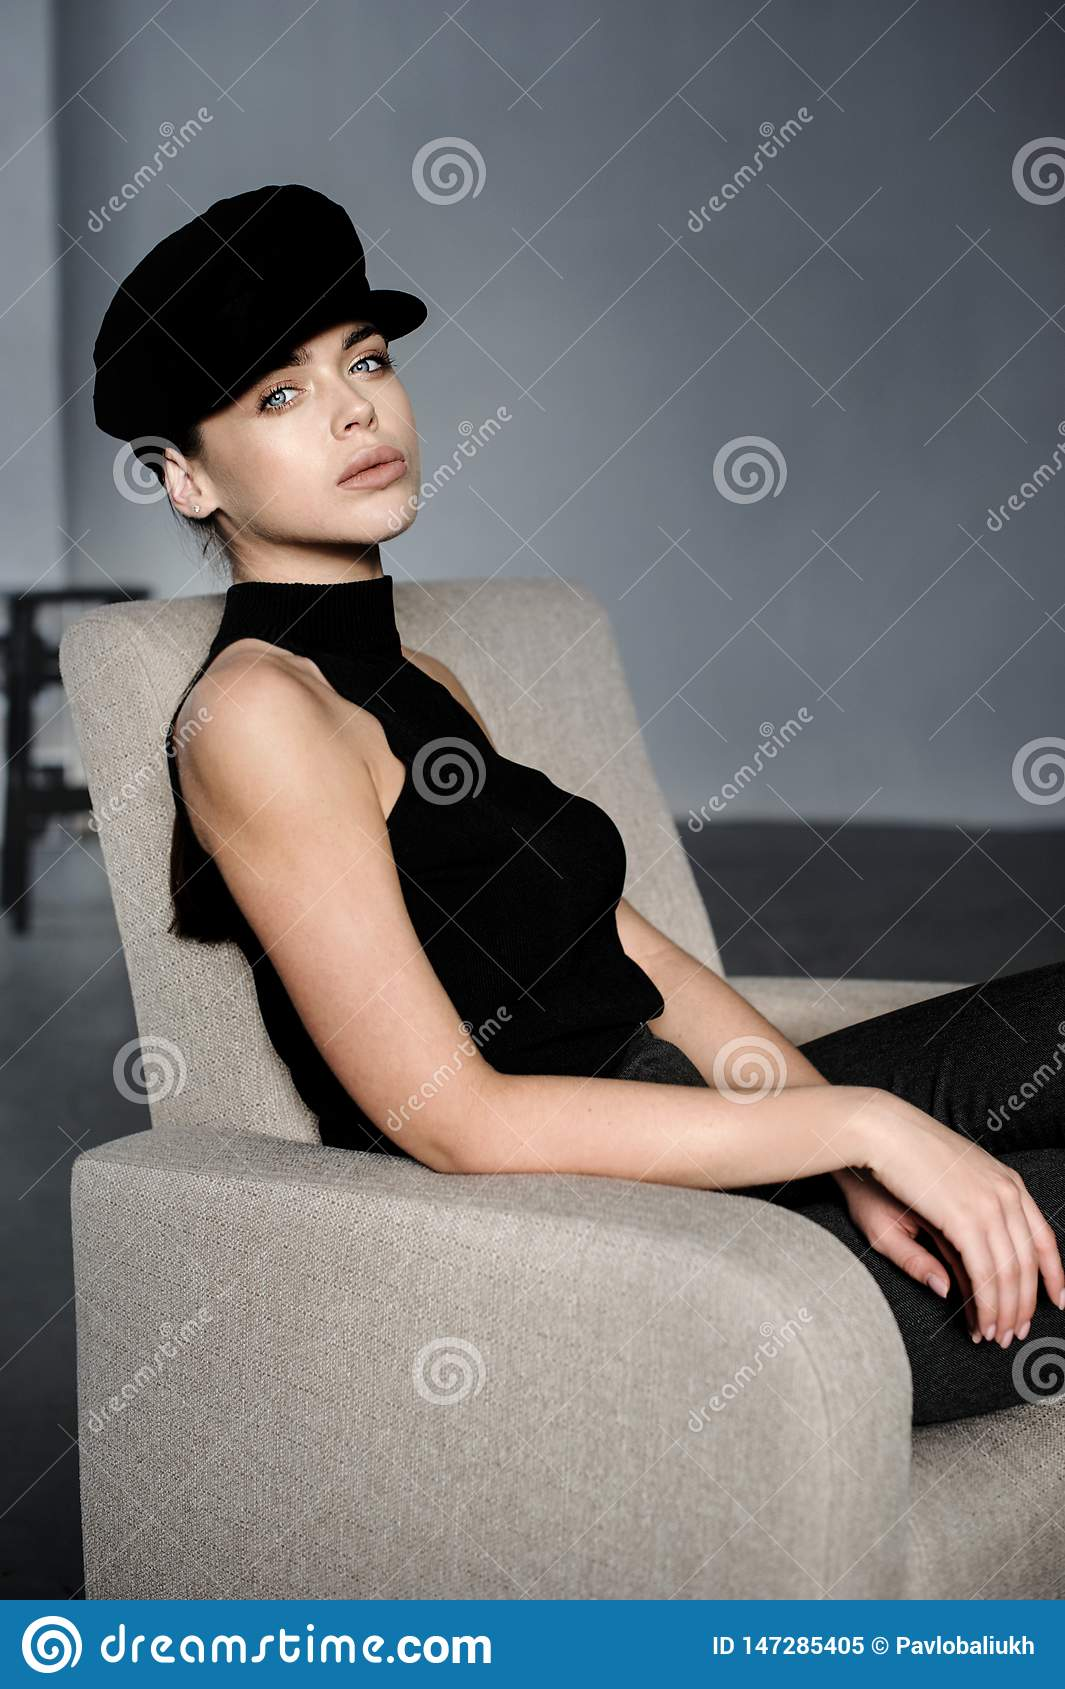 Brunette girl in black with cap posed at studio on chair